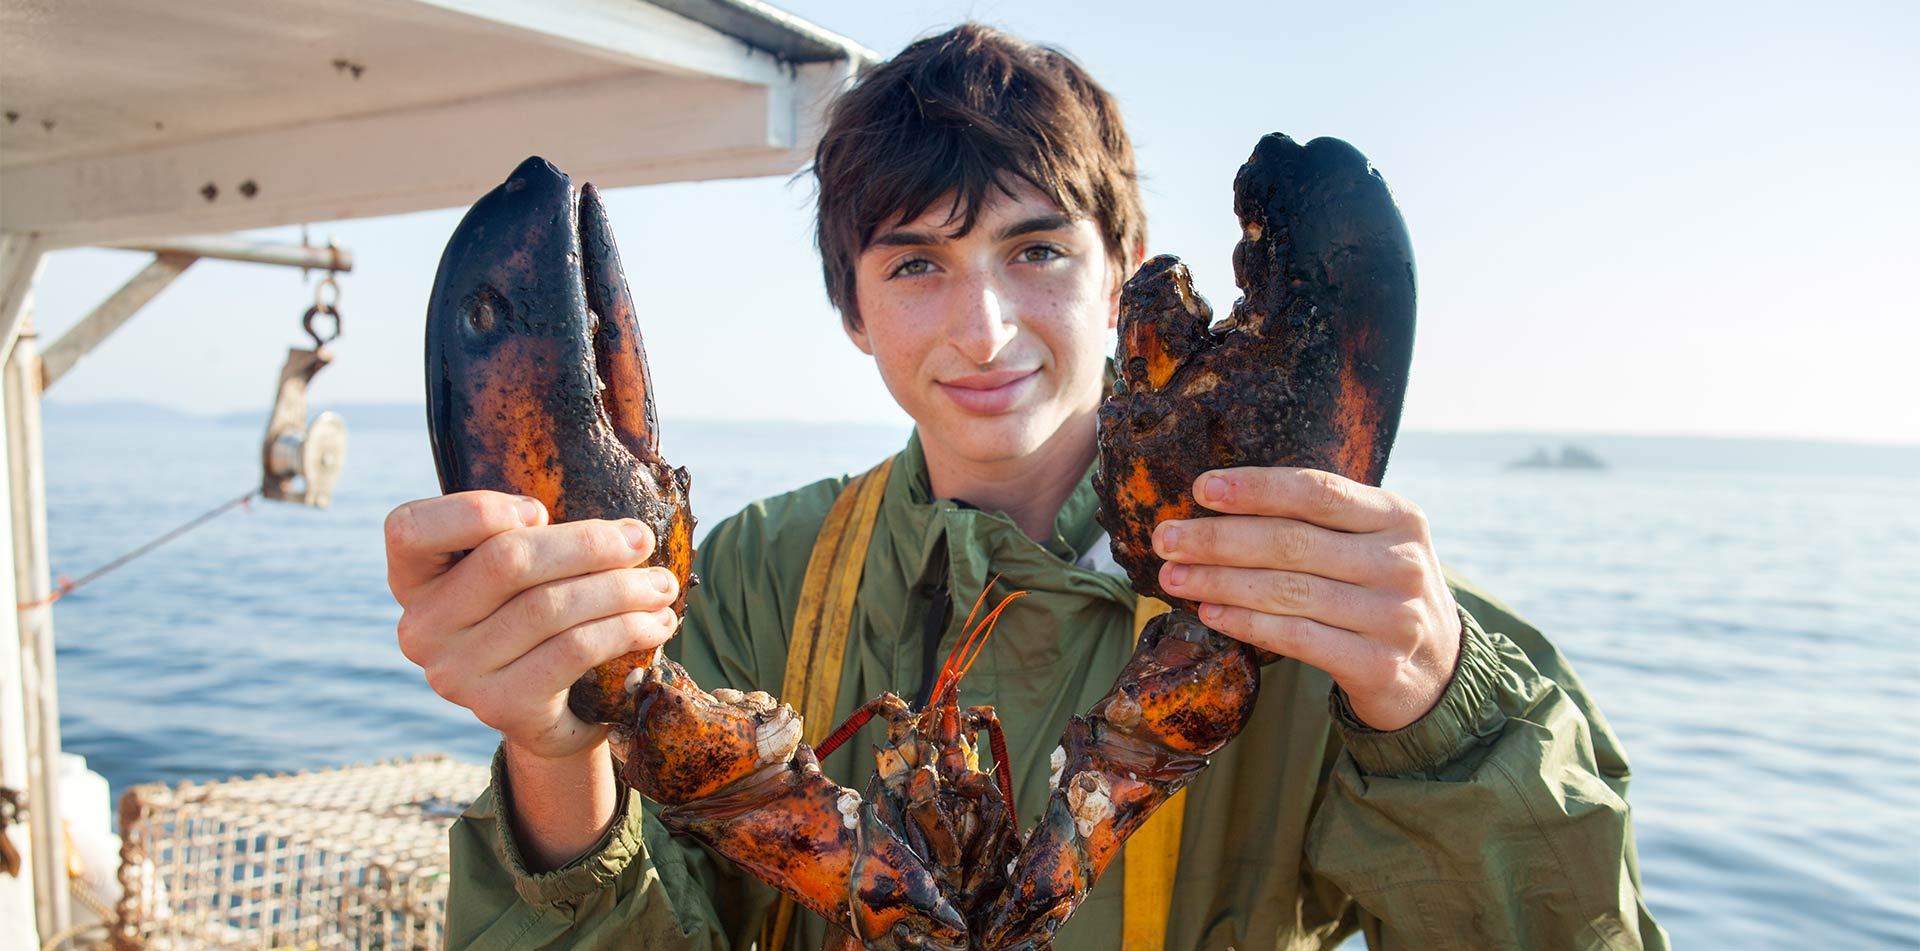 North America Canada Nova Scotia young man holding large lobster fishing boat blue water - luxury vacation destinations